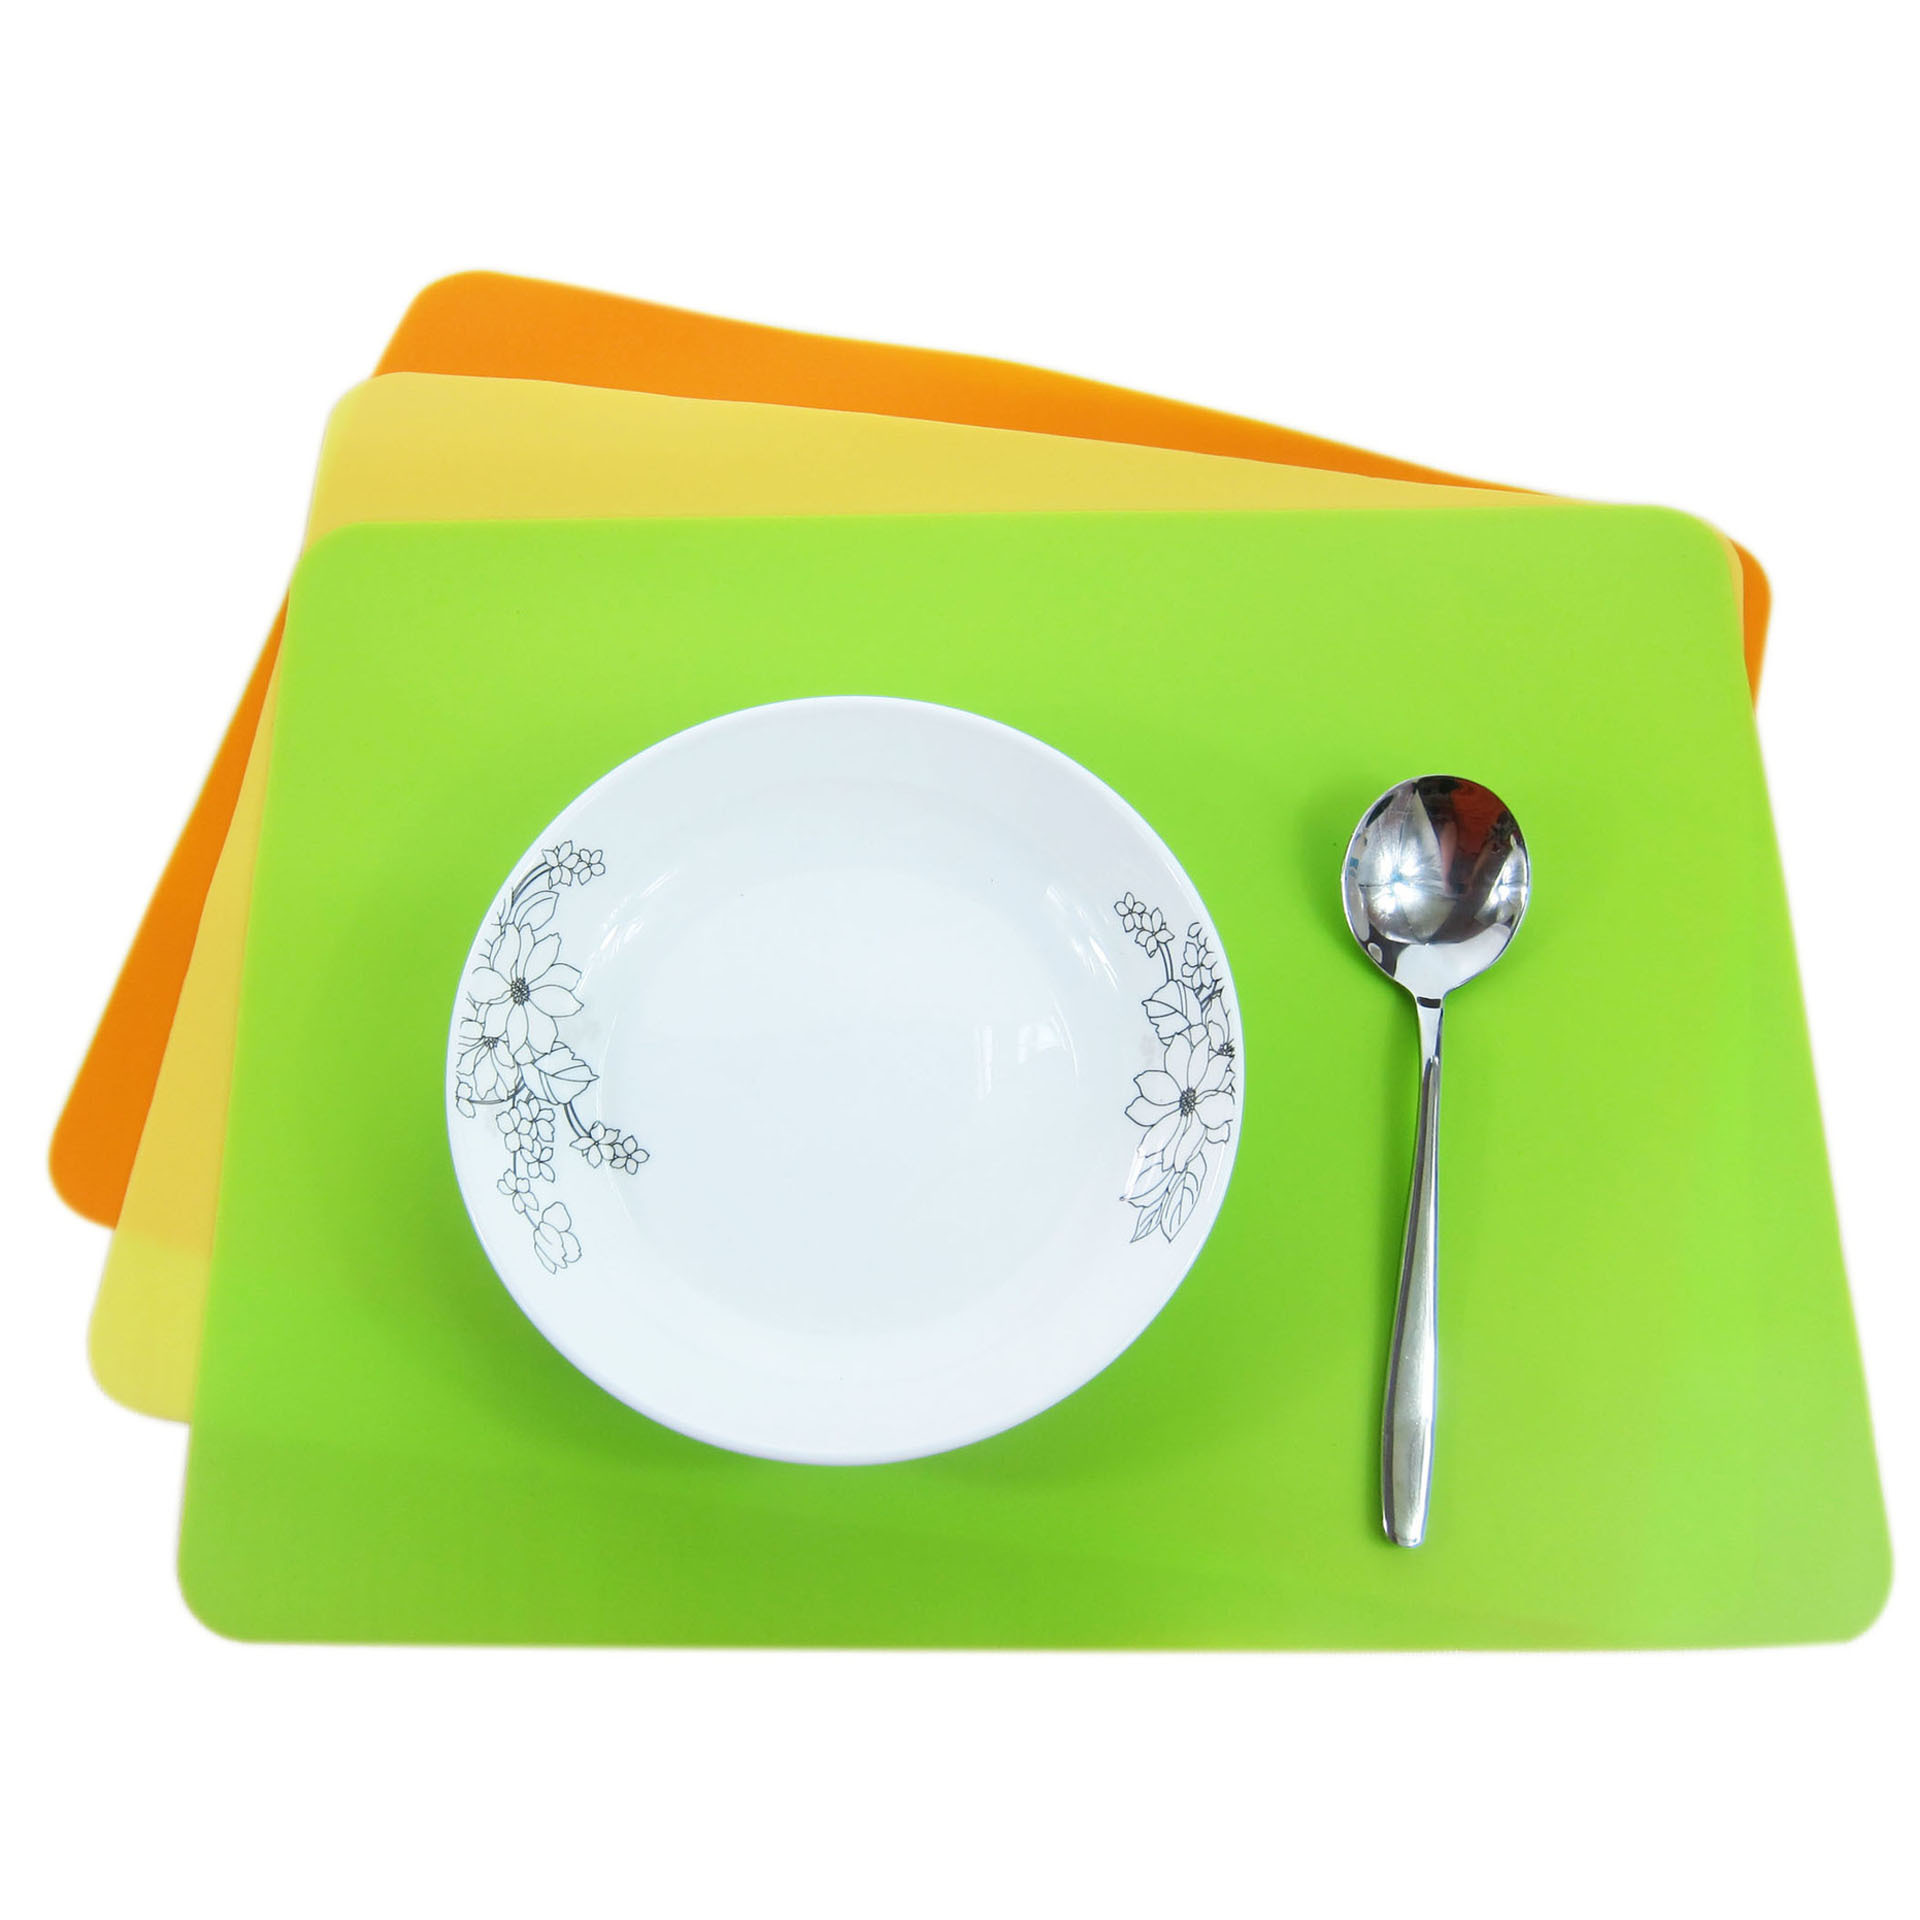 Silicone Western-style food mat